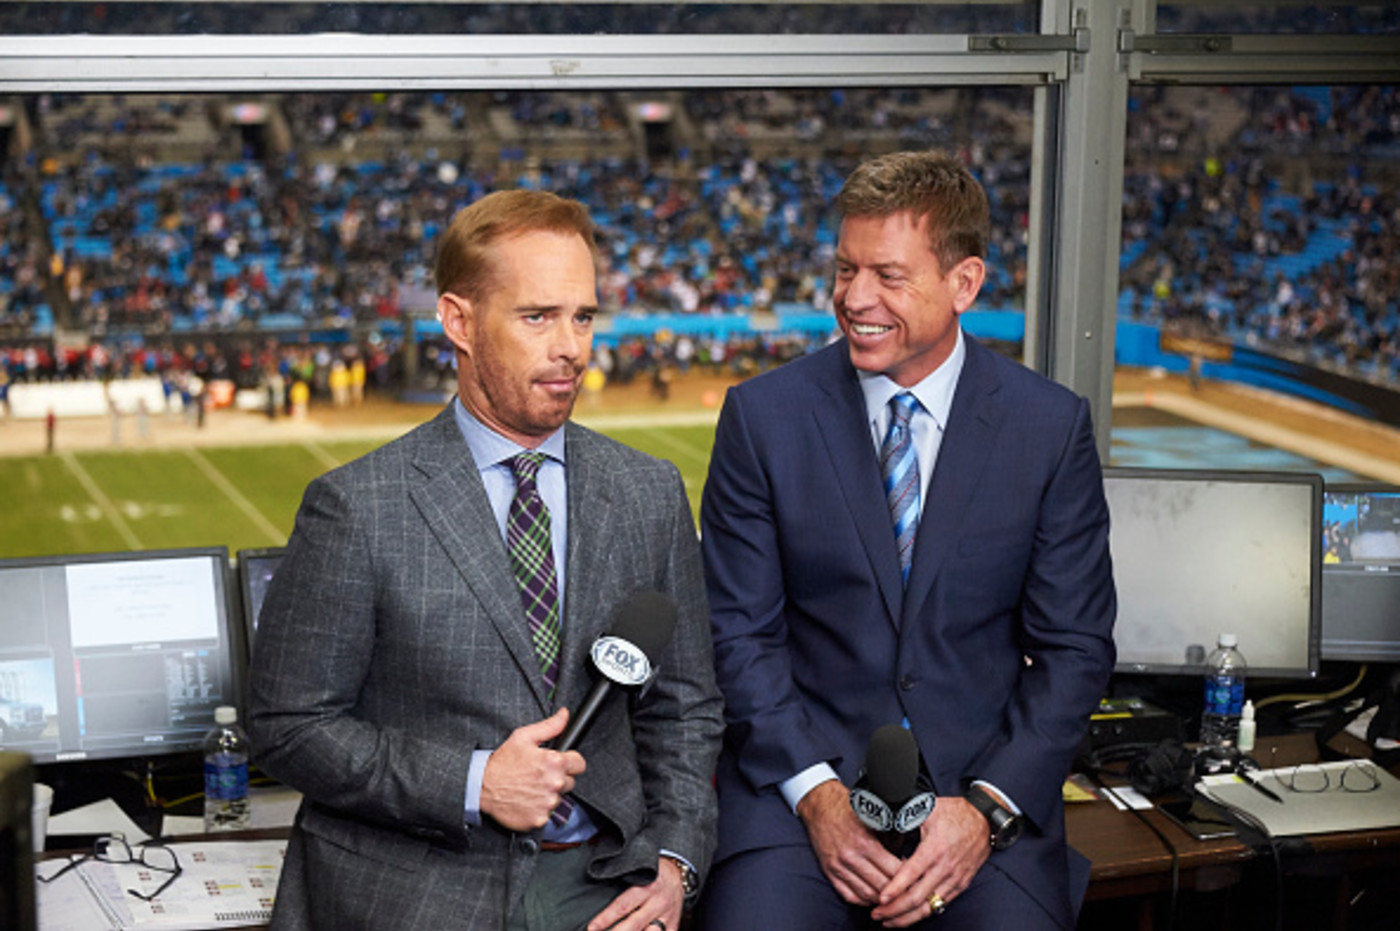 To sports announcer, one looking very excited and one looking more impartial